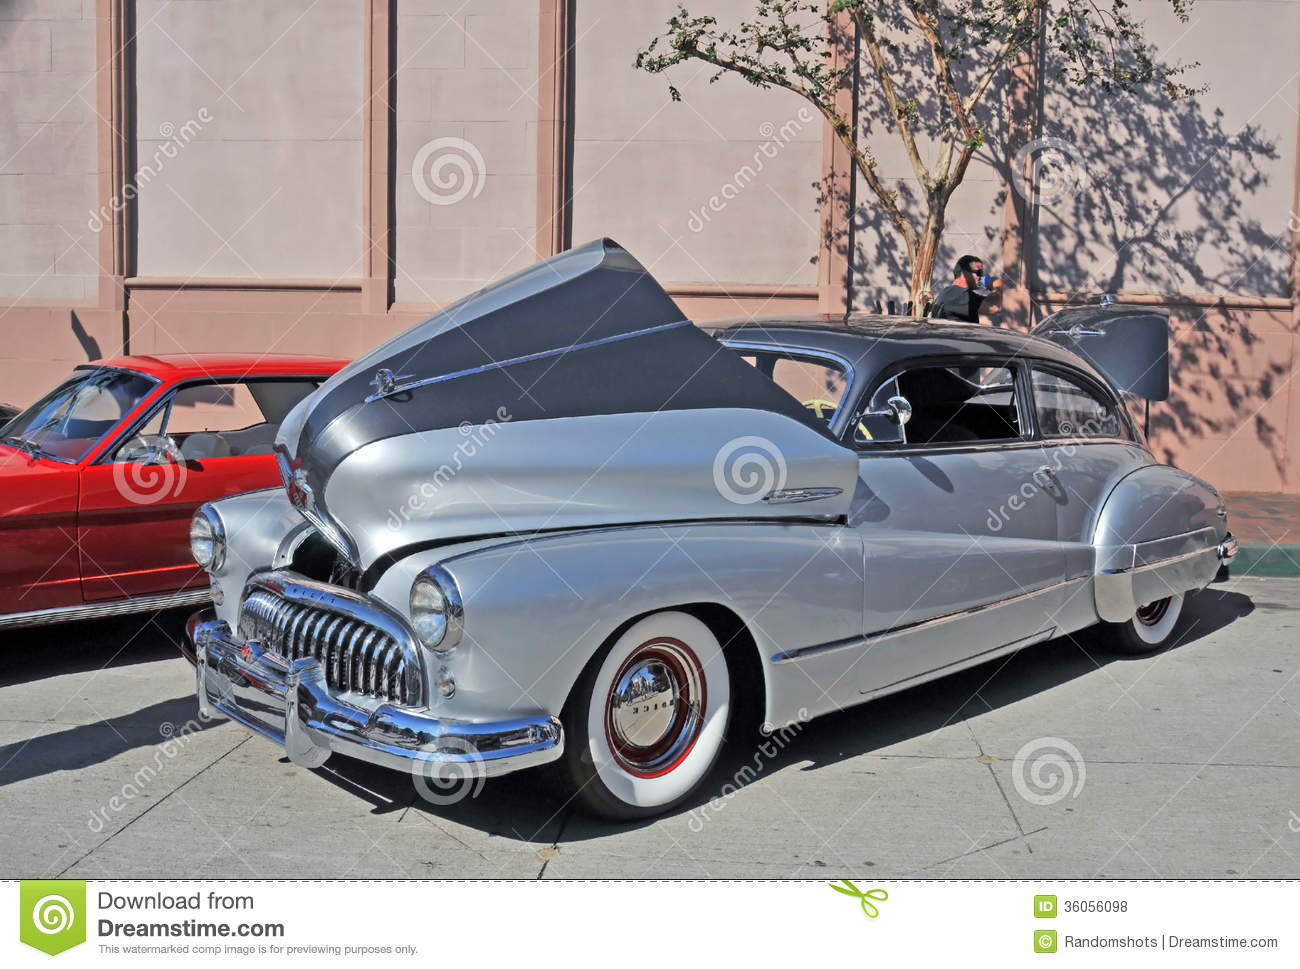 Buick Eight Famous Was Built Was Powered Straight Fireball Engine Appears To Be Post World War on Buick Straight 8 Engine